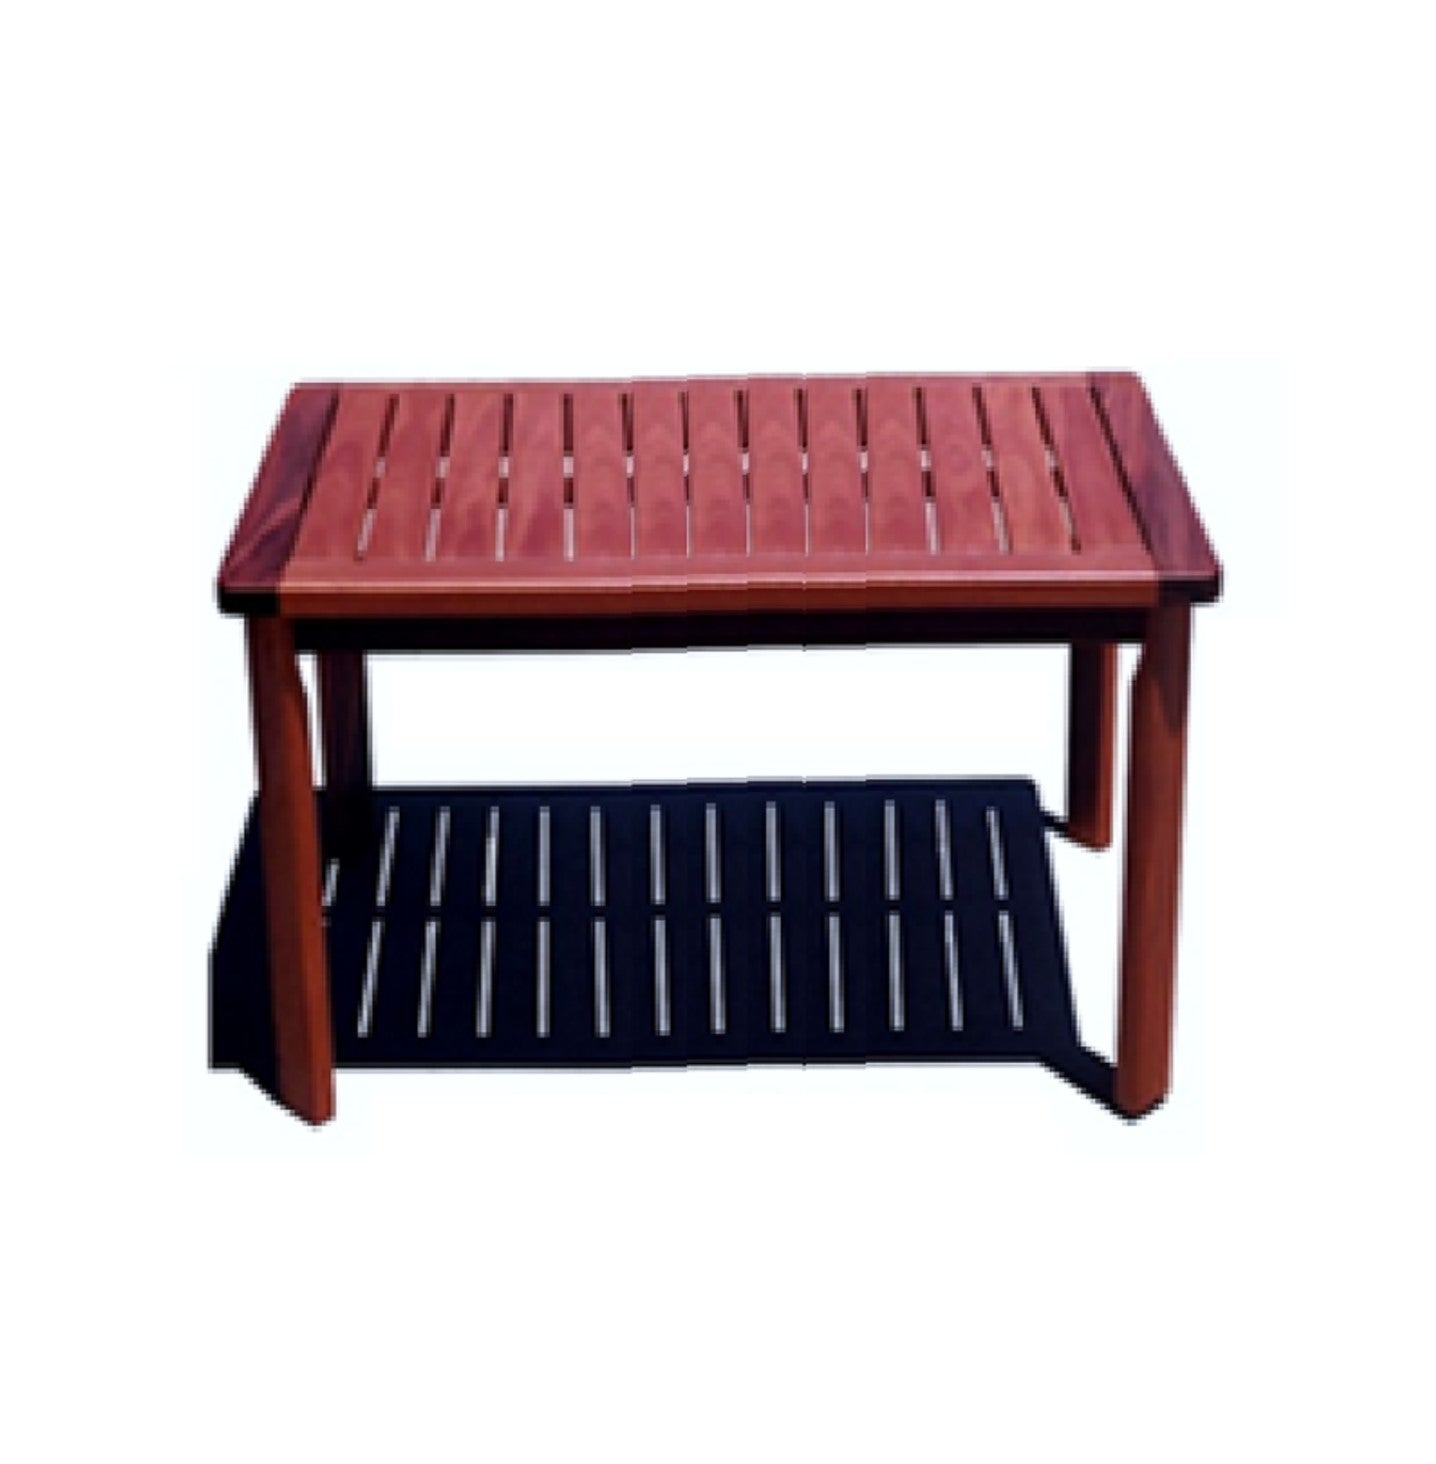 Sorrento Jarrah Outdoor Table (L110cm)